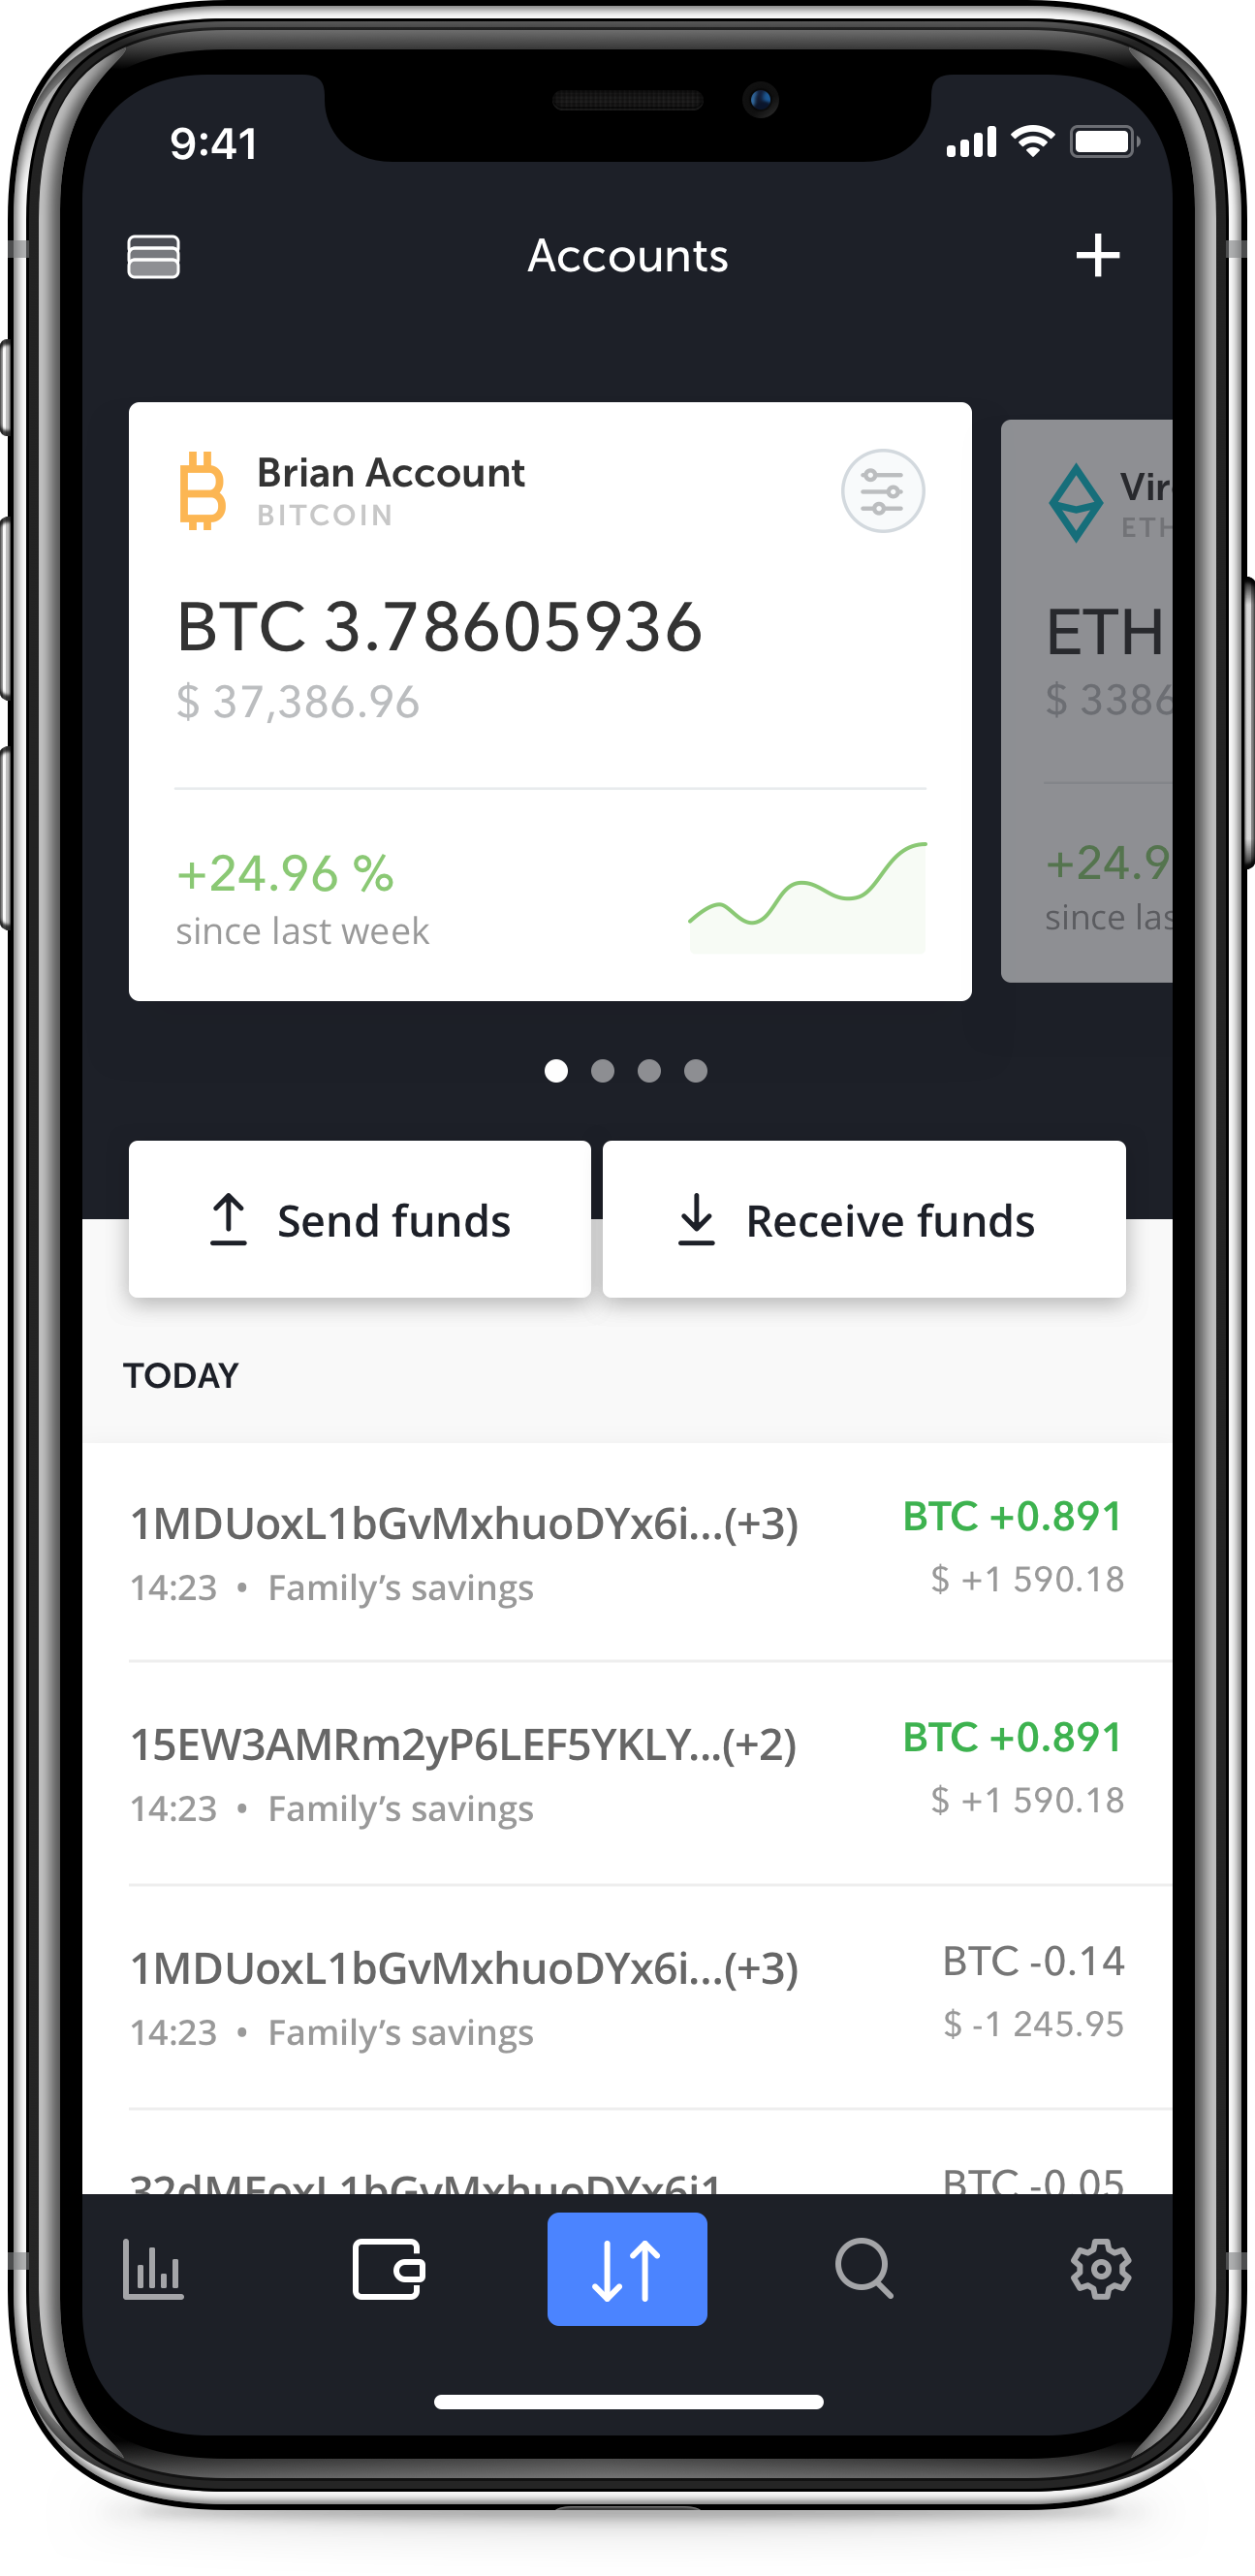 The ledger wallet manager